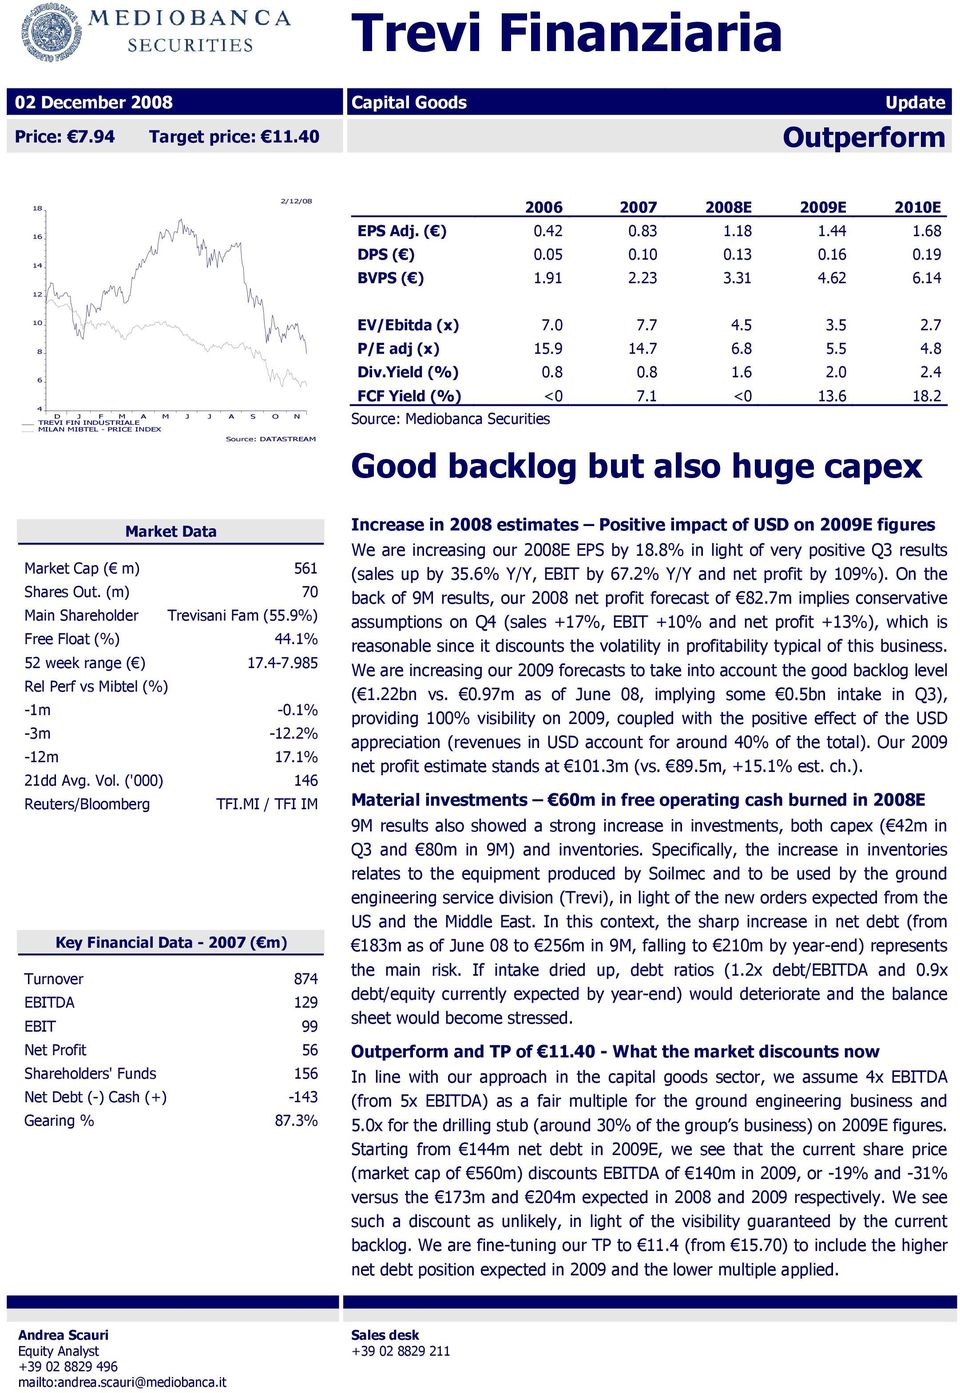 5 4.8 Div.Yield (%) 0.8 0.8 1.6 2.0 2.4 FCF Yield (%) <0 7.1 <0 13.6 18.2 Source: Mediobanca Securities Good backlog but also huge capex Market Data Market Cap ( m) 561 Shares Out.